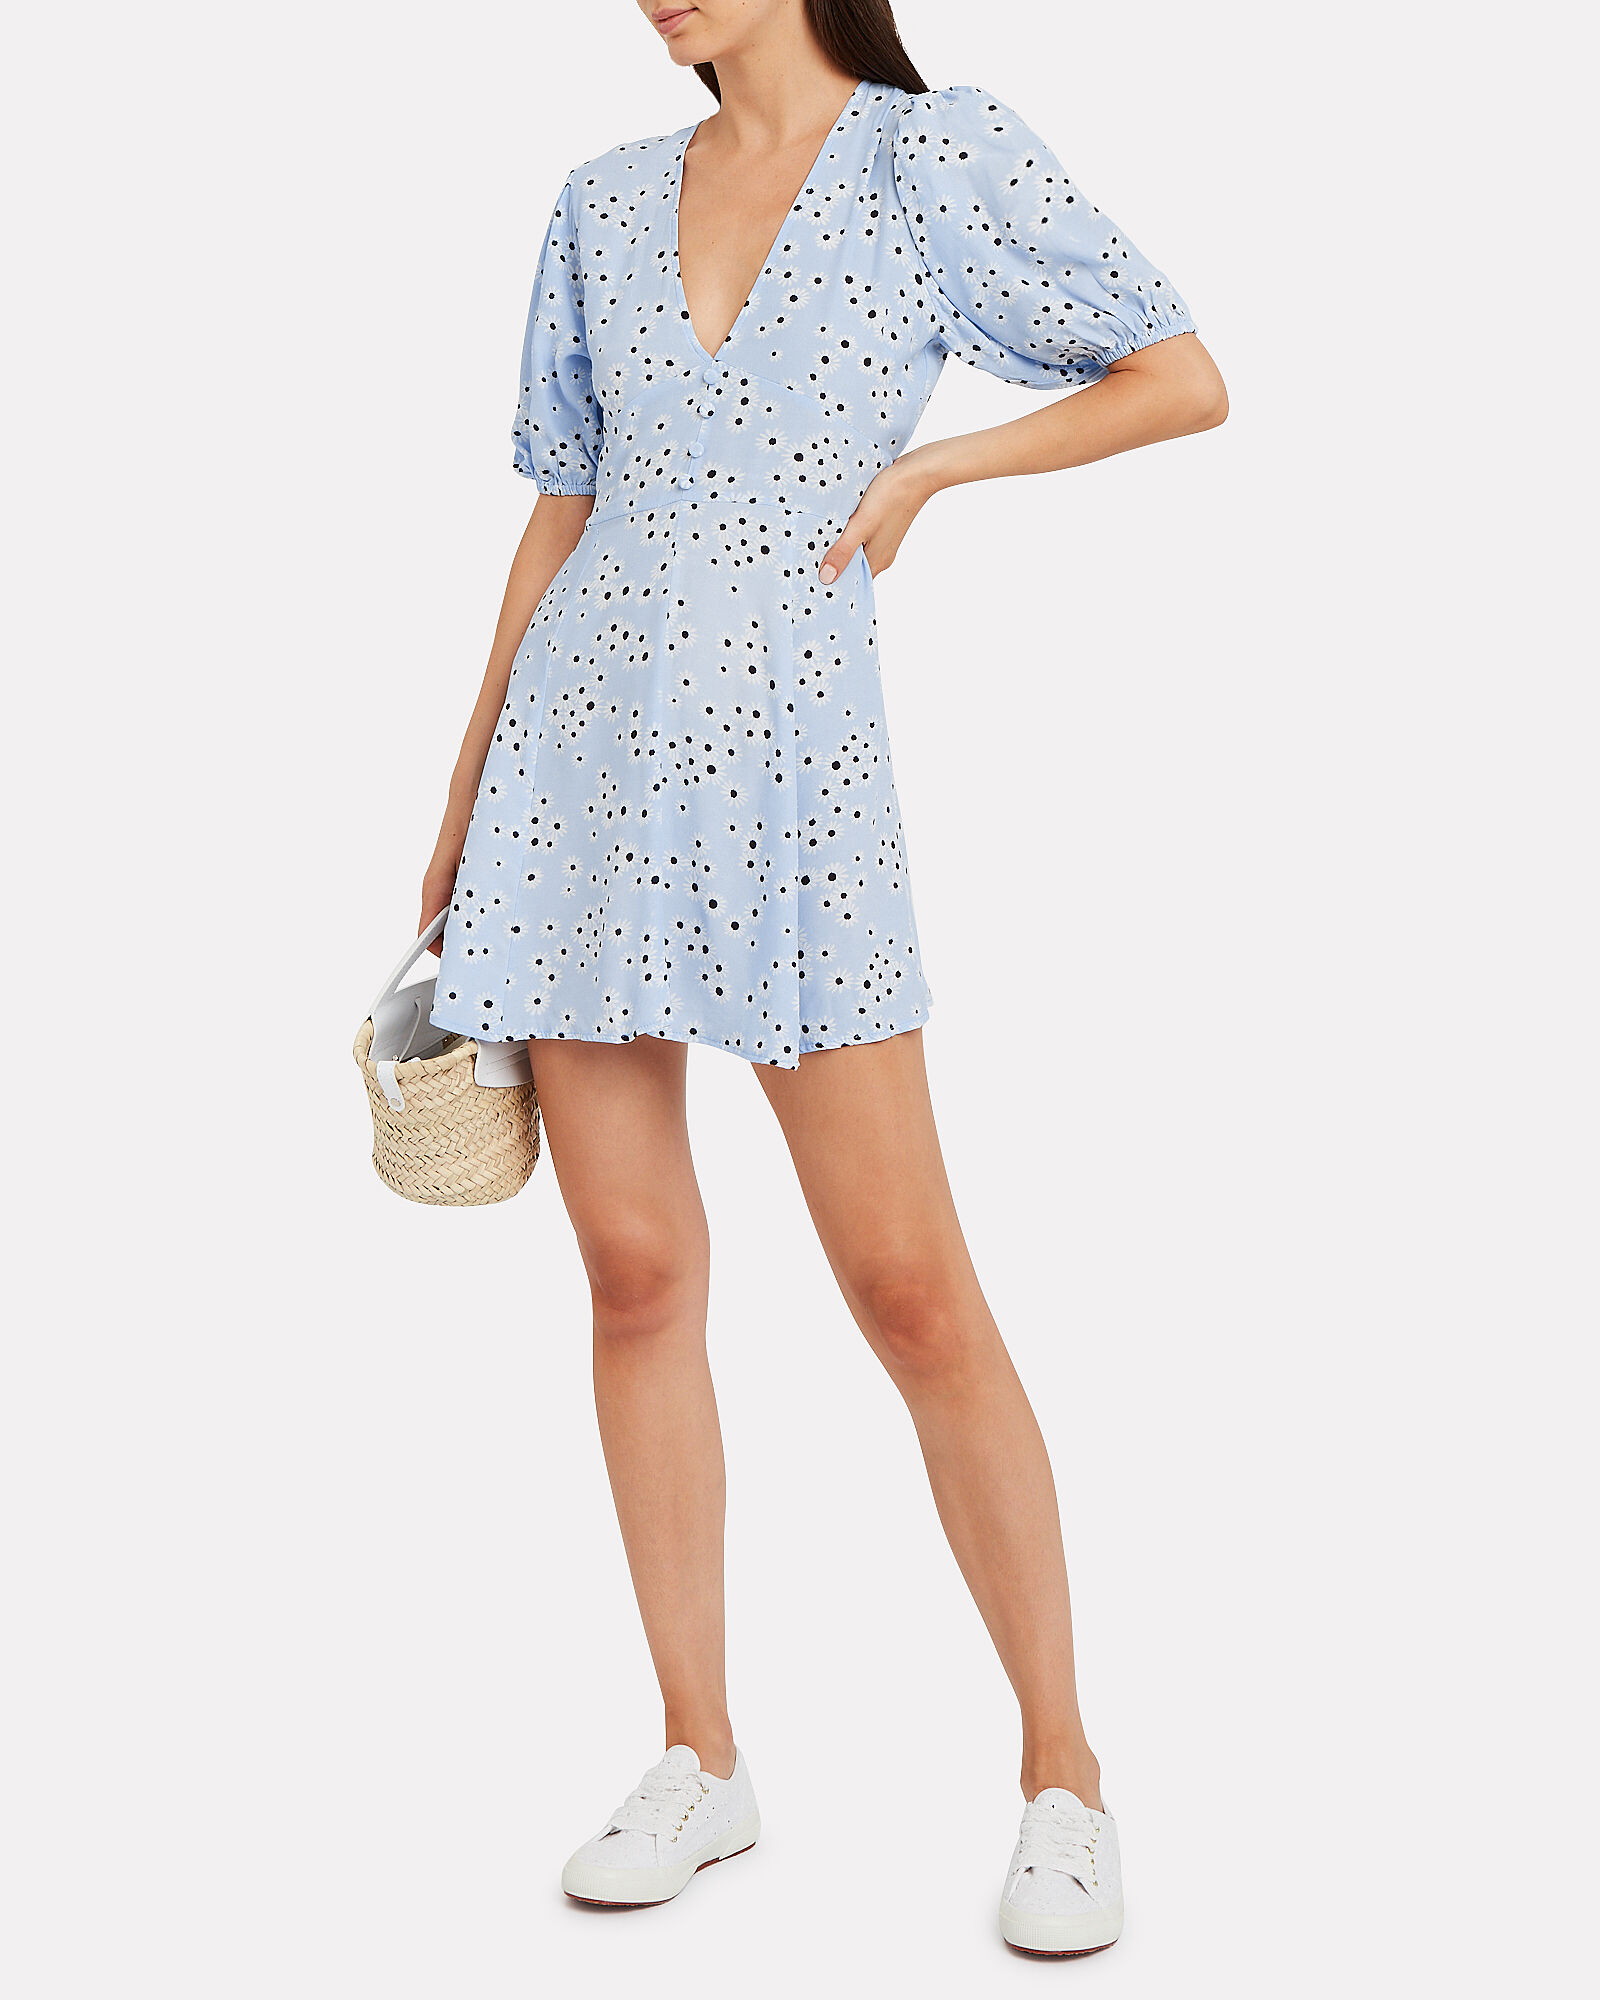 Ilia Floral Mini Dress, BLUE-LT, hi-res